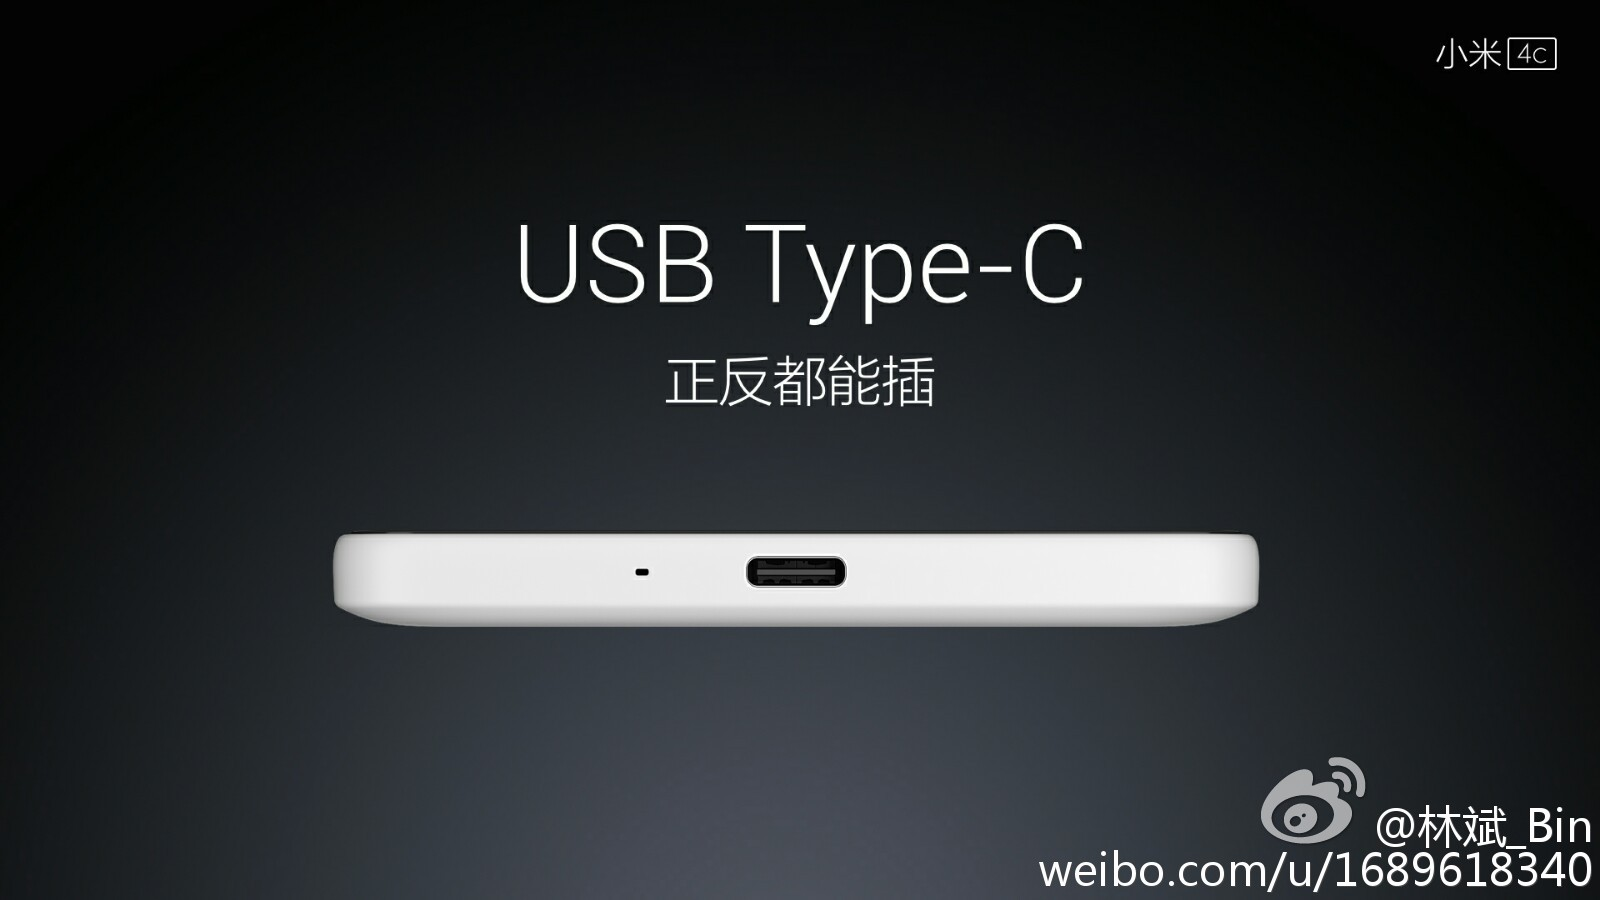 Xiaomi Mi 4c Confirmed To Have Snapdragon 808 And Usb Type C 3gb 32gb White Launch With A 5 Inch Fhd Display 2 3 Gb Ram Up 32 Emmc 13 Mp Rear Front Cameras 3000 Mah Battery